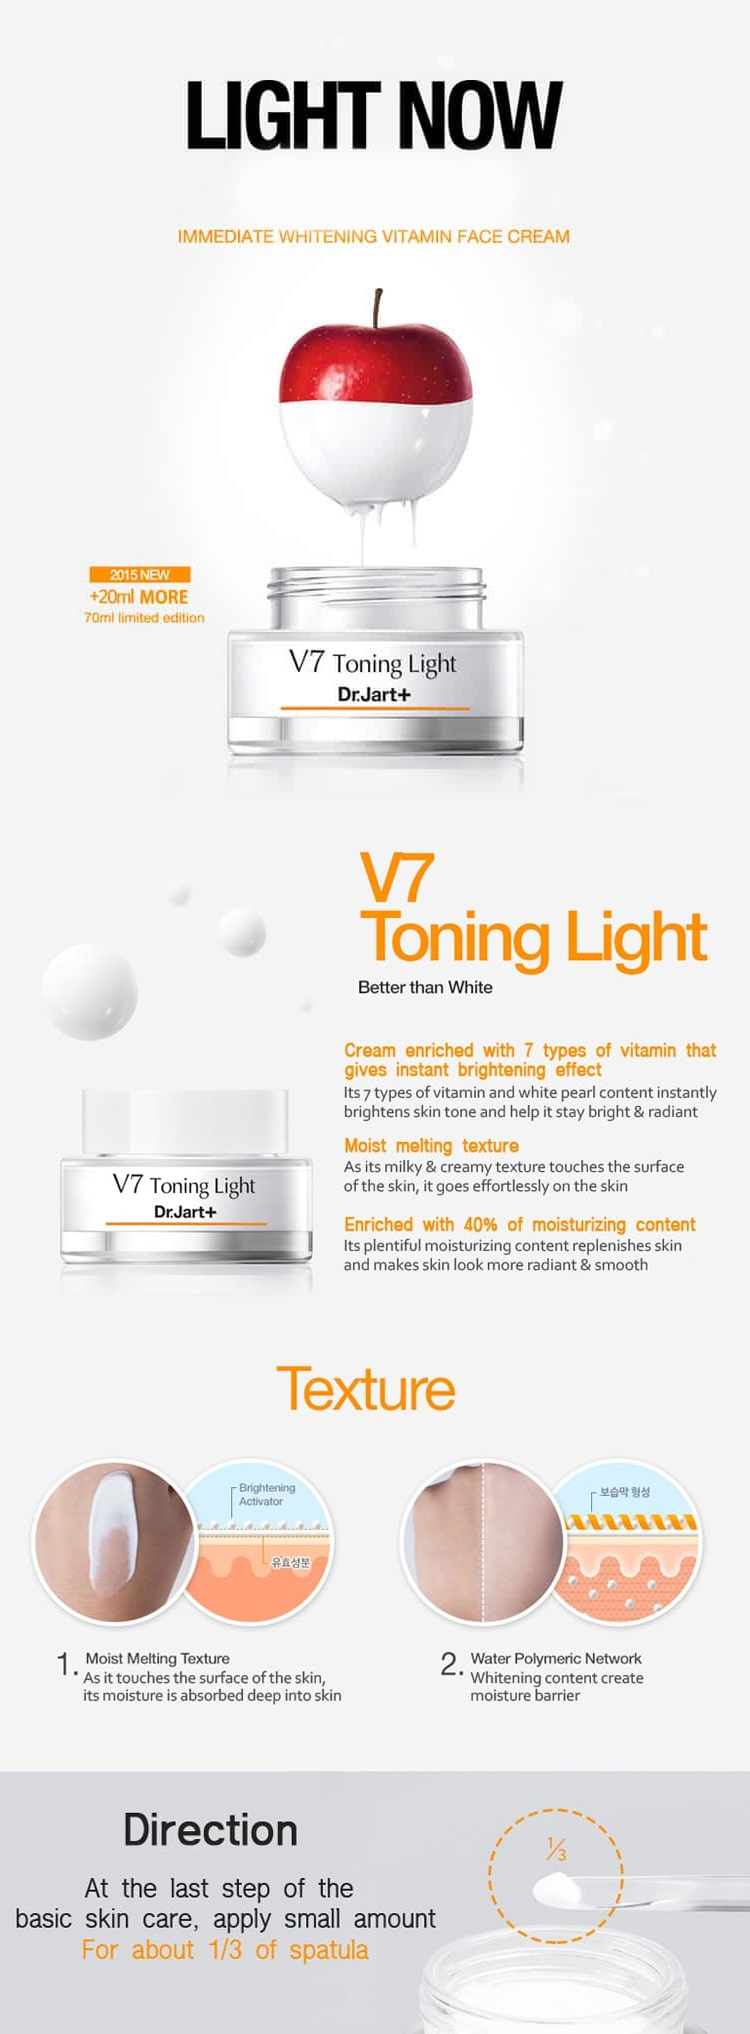 DR JART+ V7 Toning LIght Cream Australia Cosme Hut